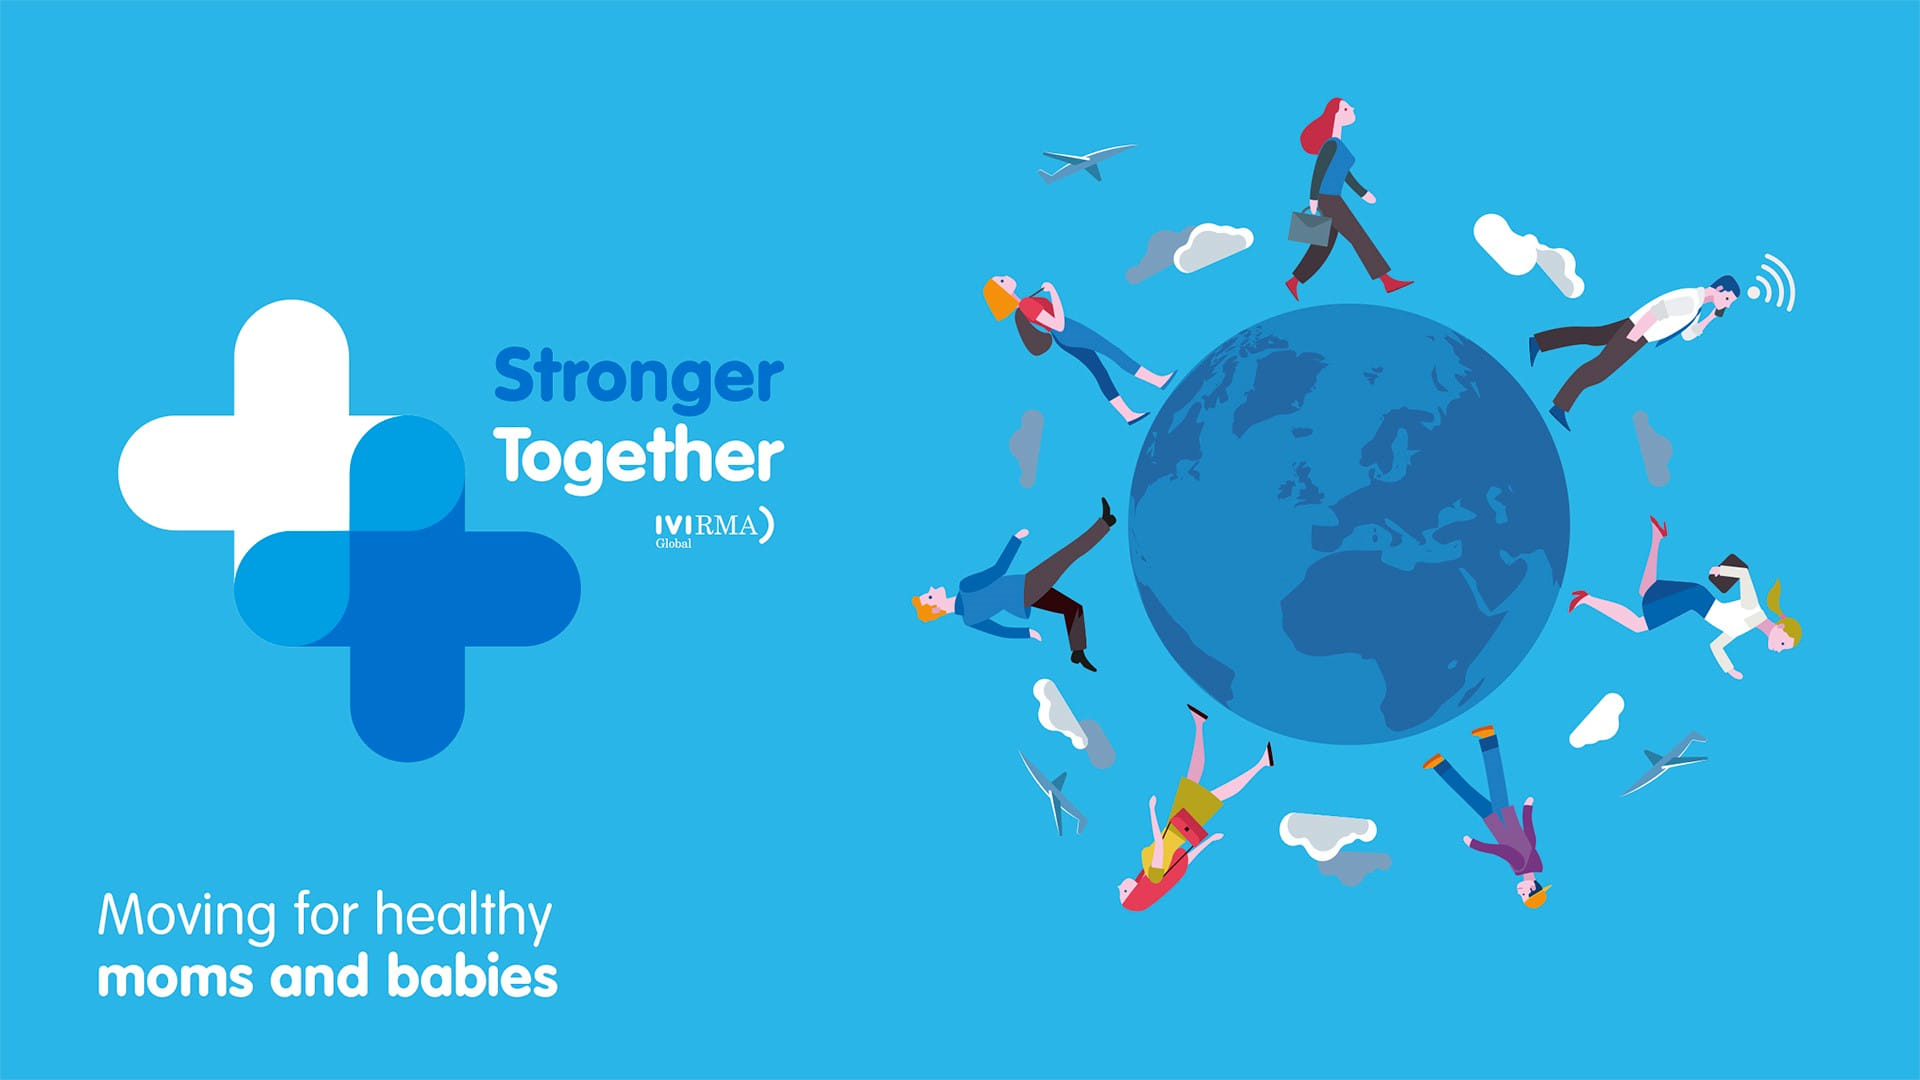 Stronger Together: IVI are stepping up for mothers and their babies